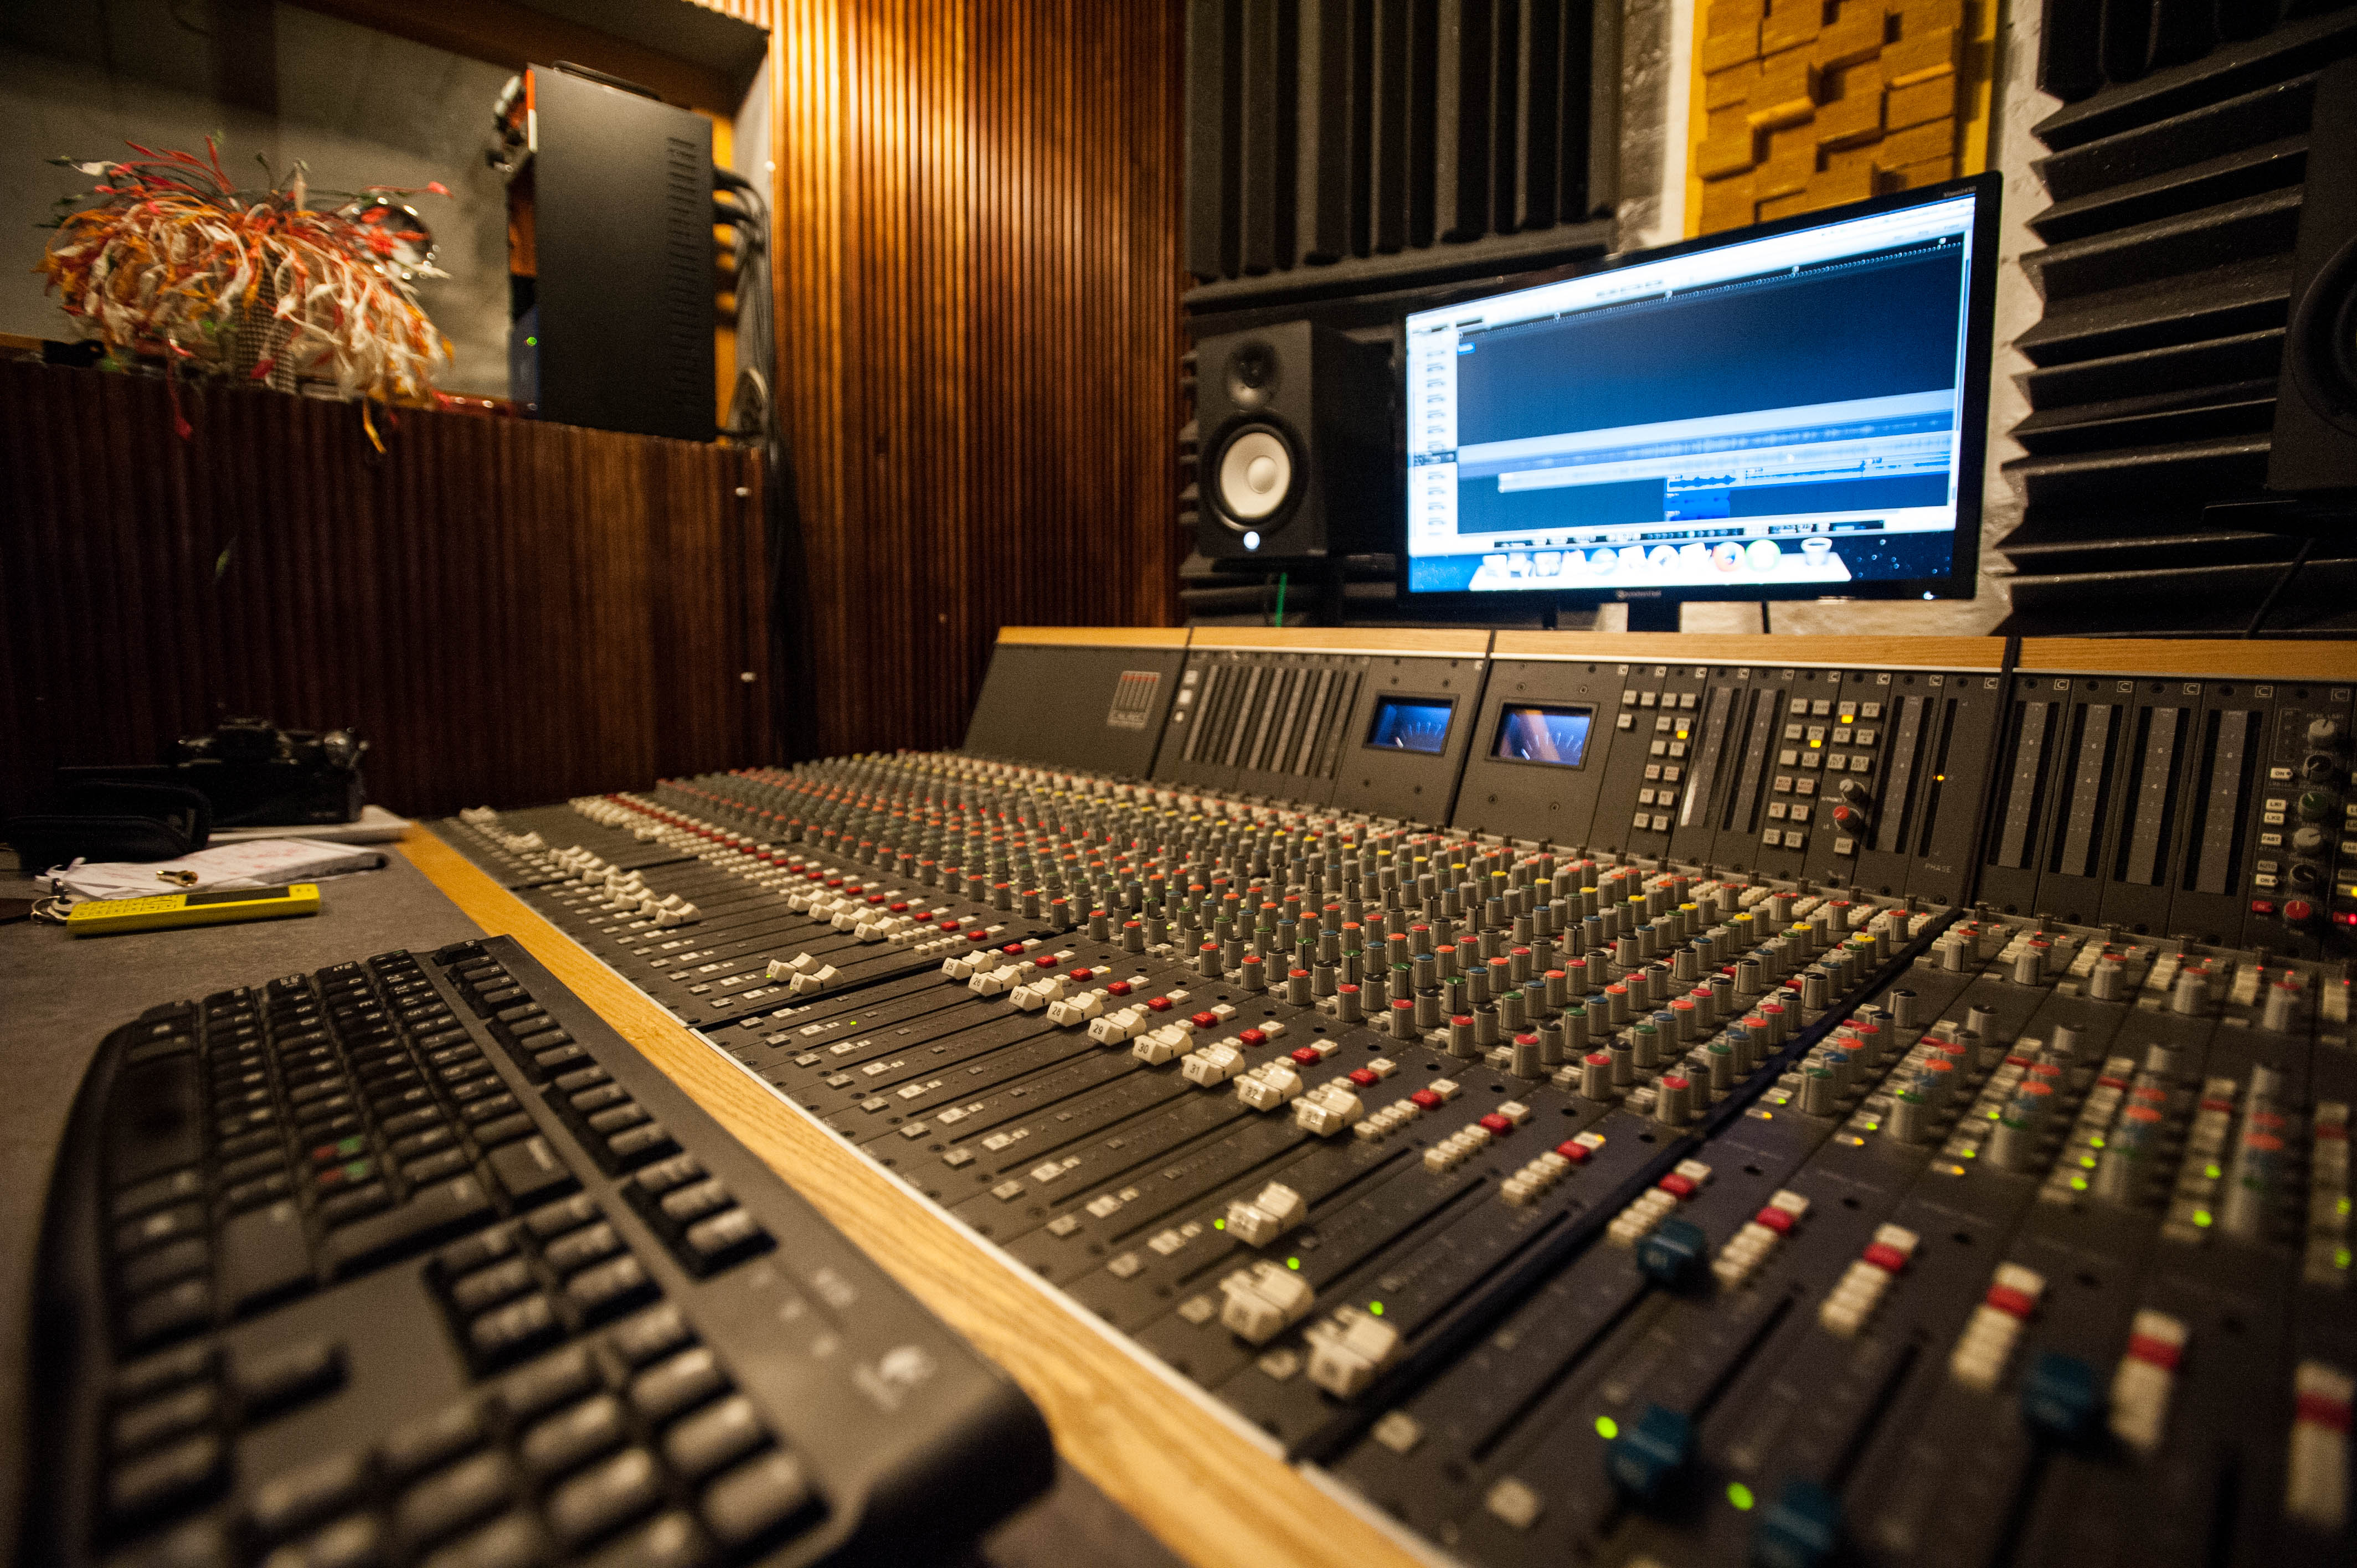 CHAPTER 1: The 9 Home Recording Studio Essentials for Beginners